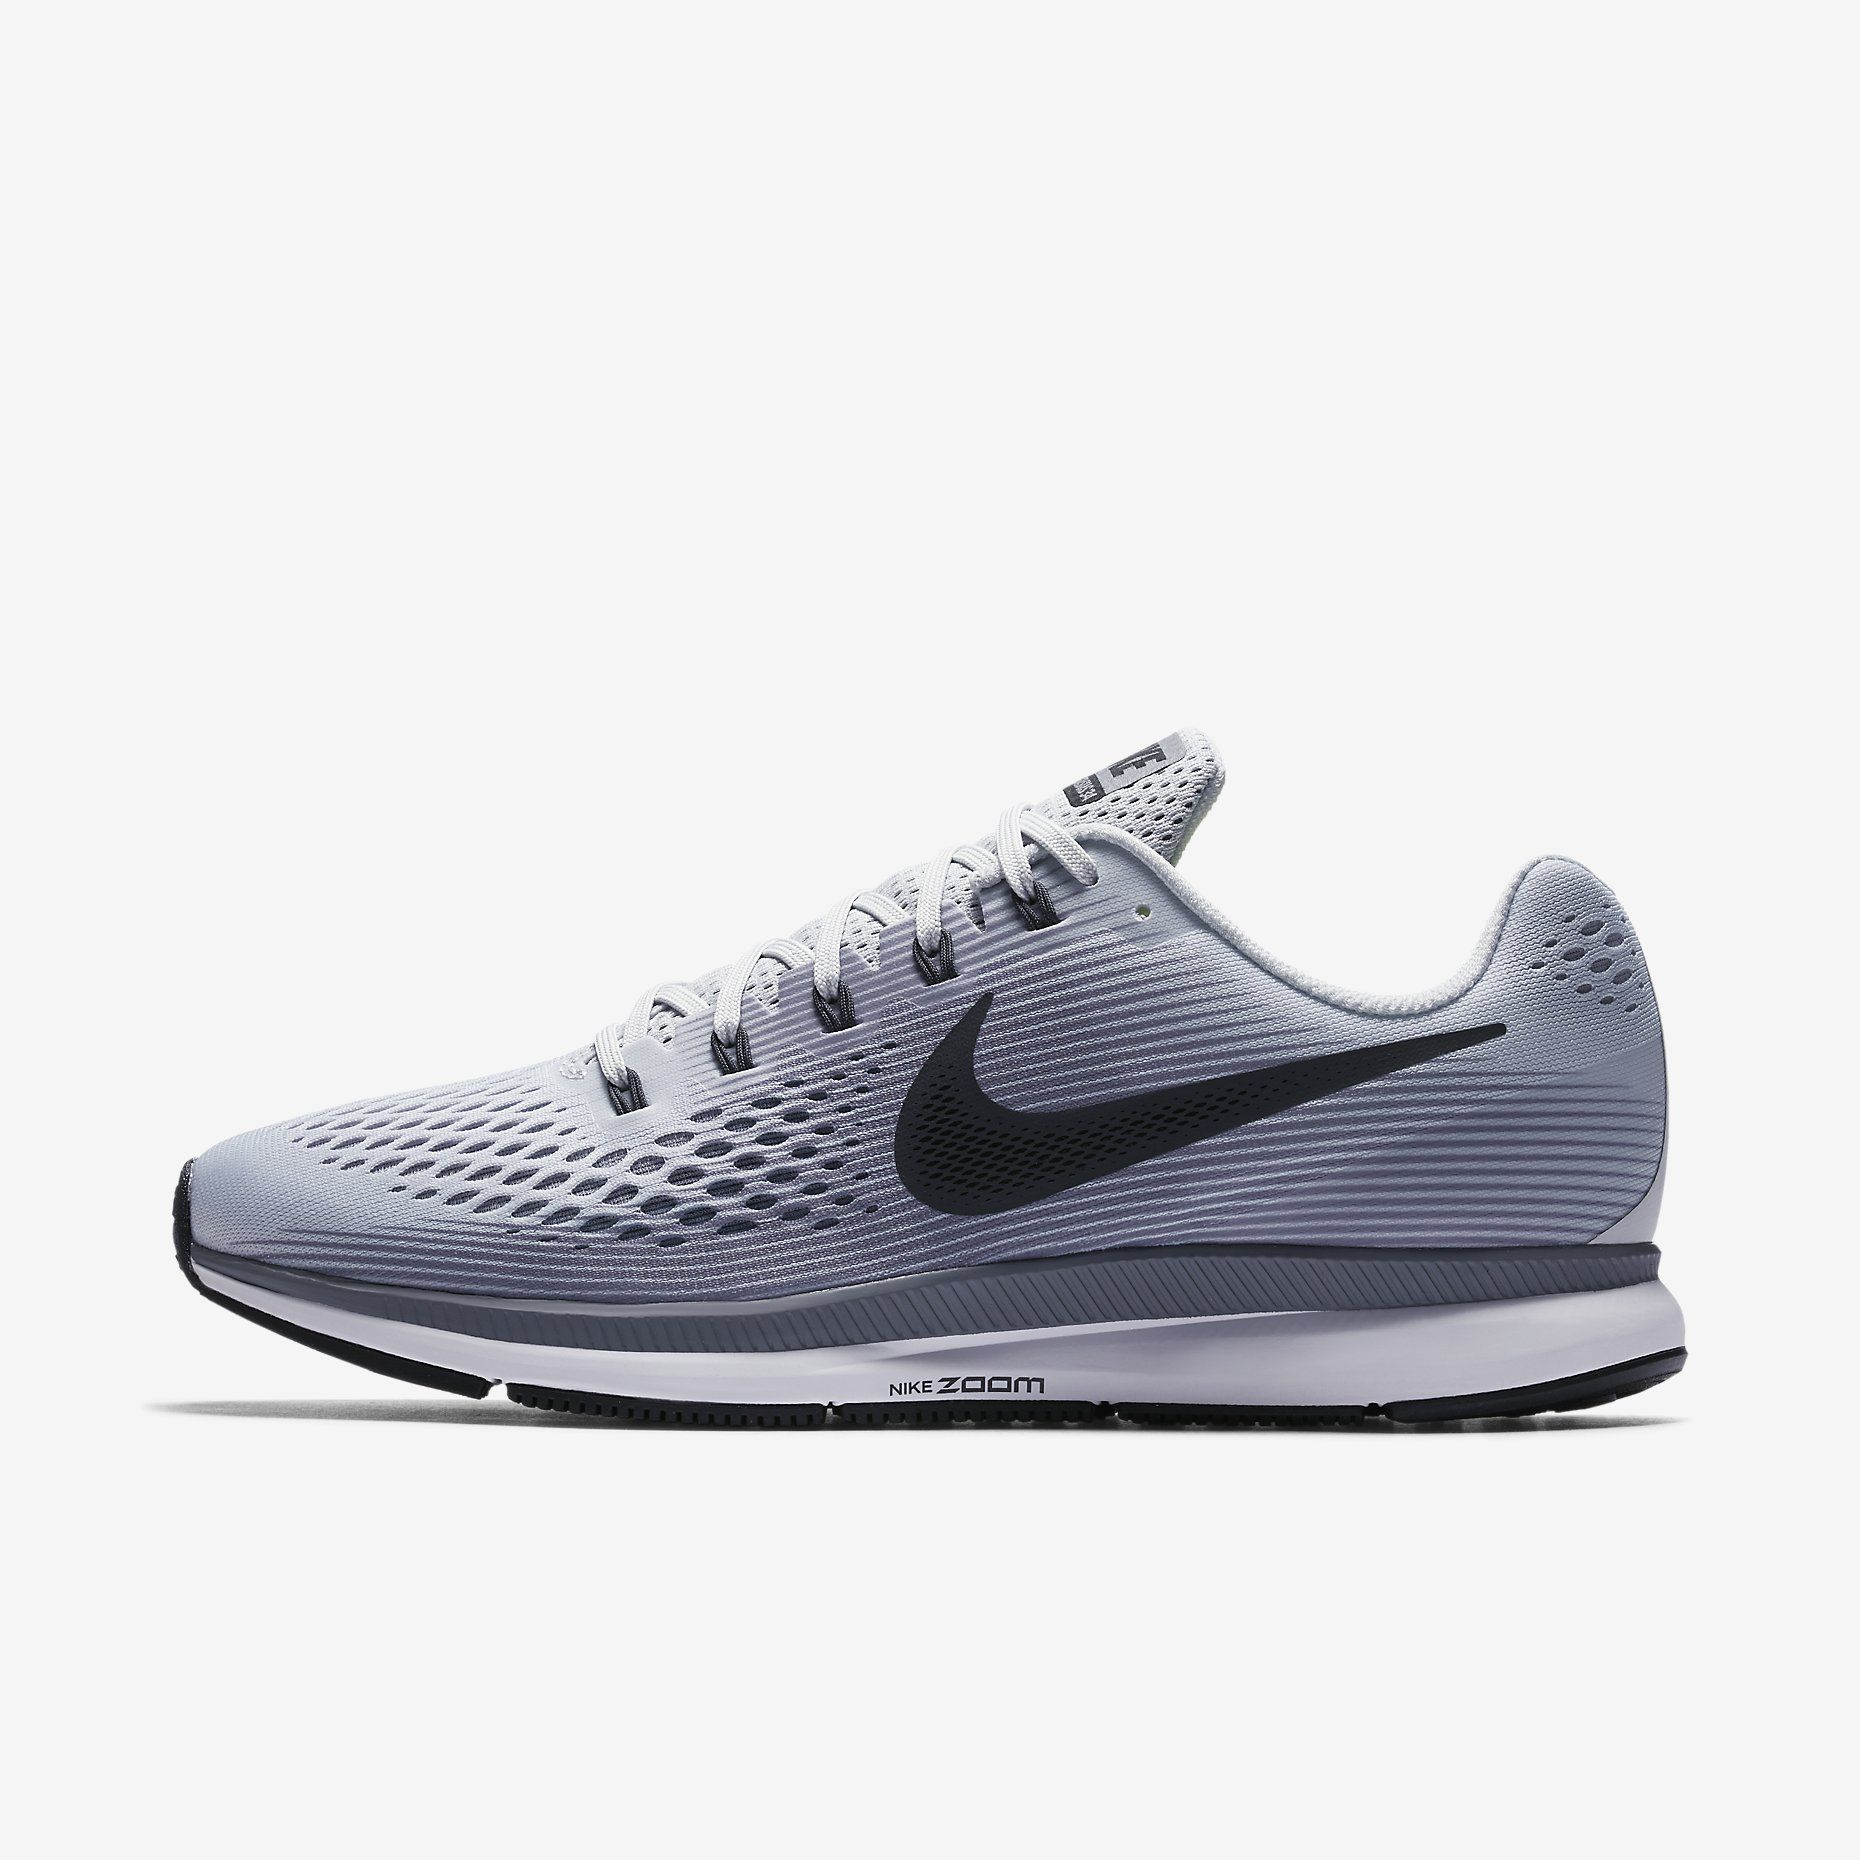 pretty nice c4d71 b8eca Products engineered for peak performance in competition, training, and life.  Shop the latest innovation at Nike.com.